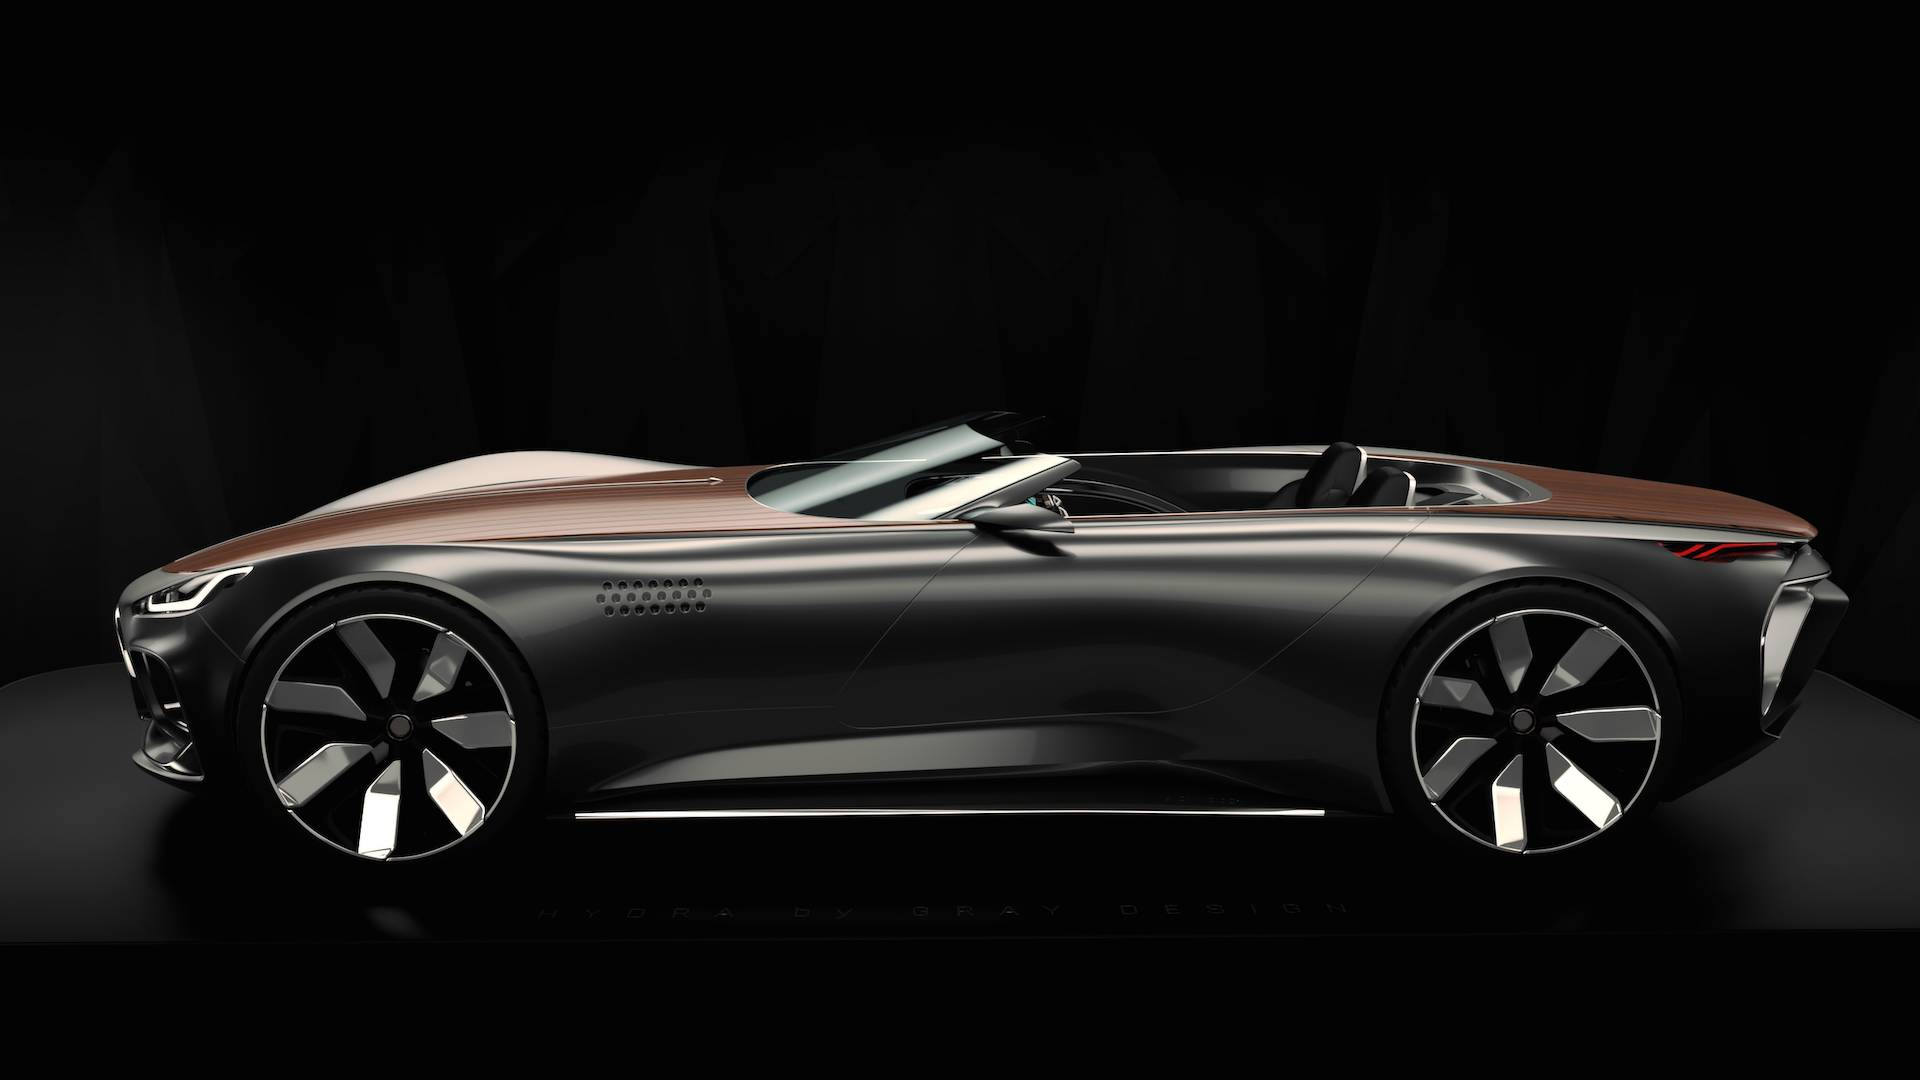 gray-design-proposes-a-meeting-of-ages-in-woody-supercar-5